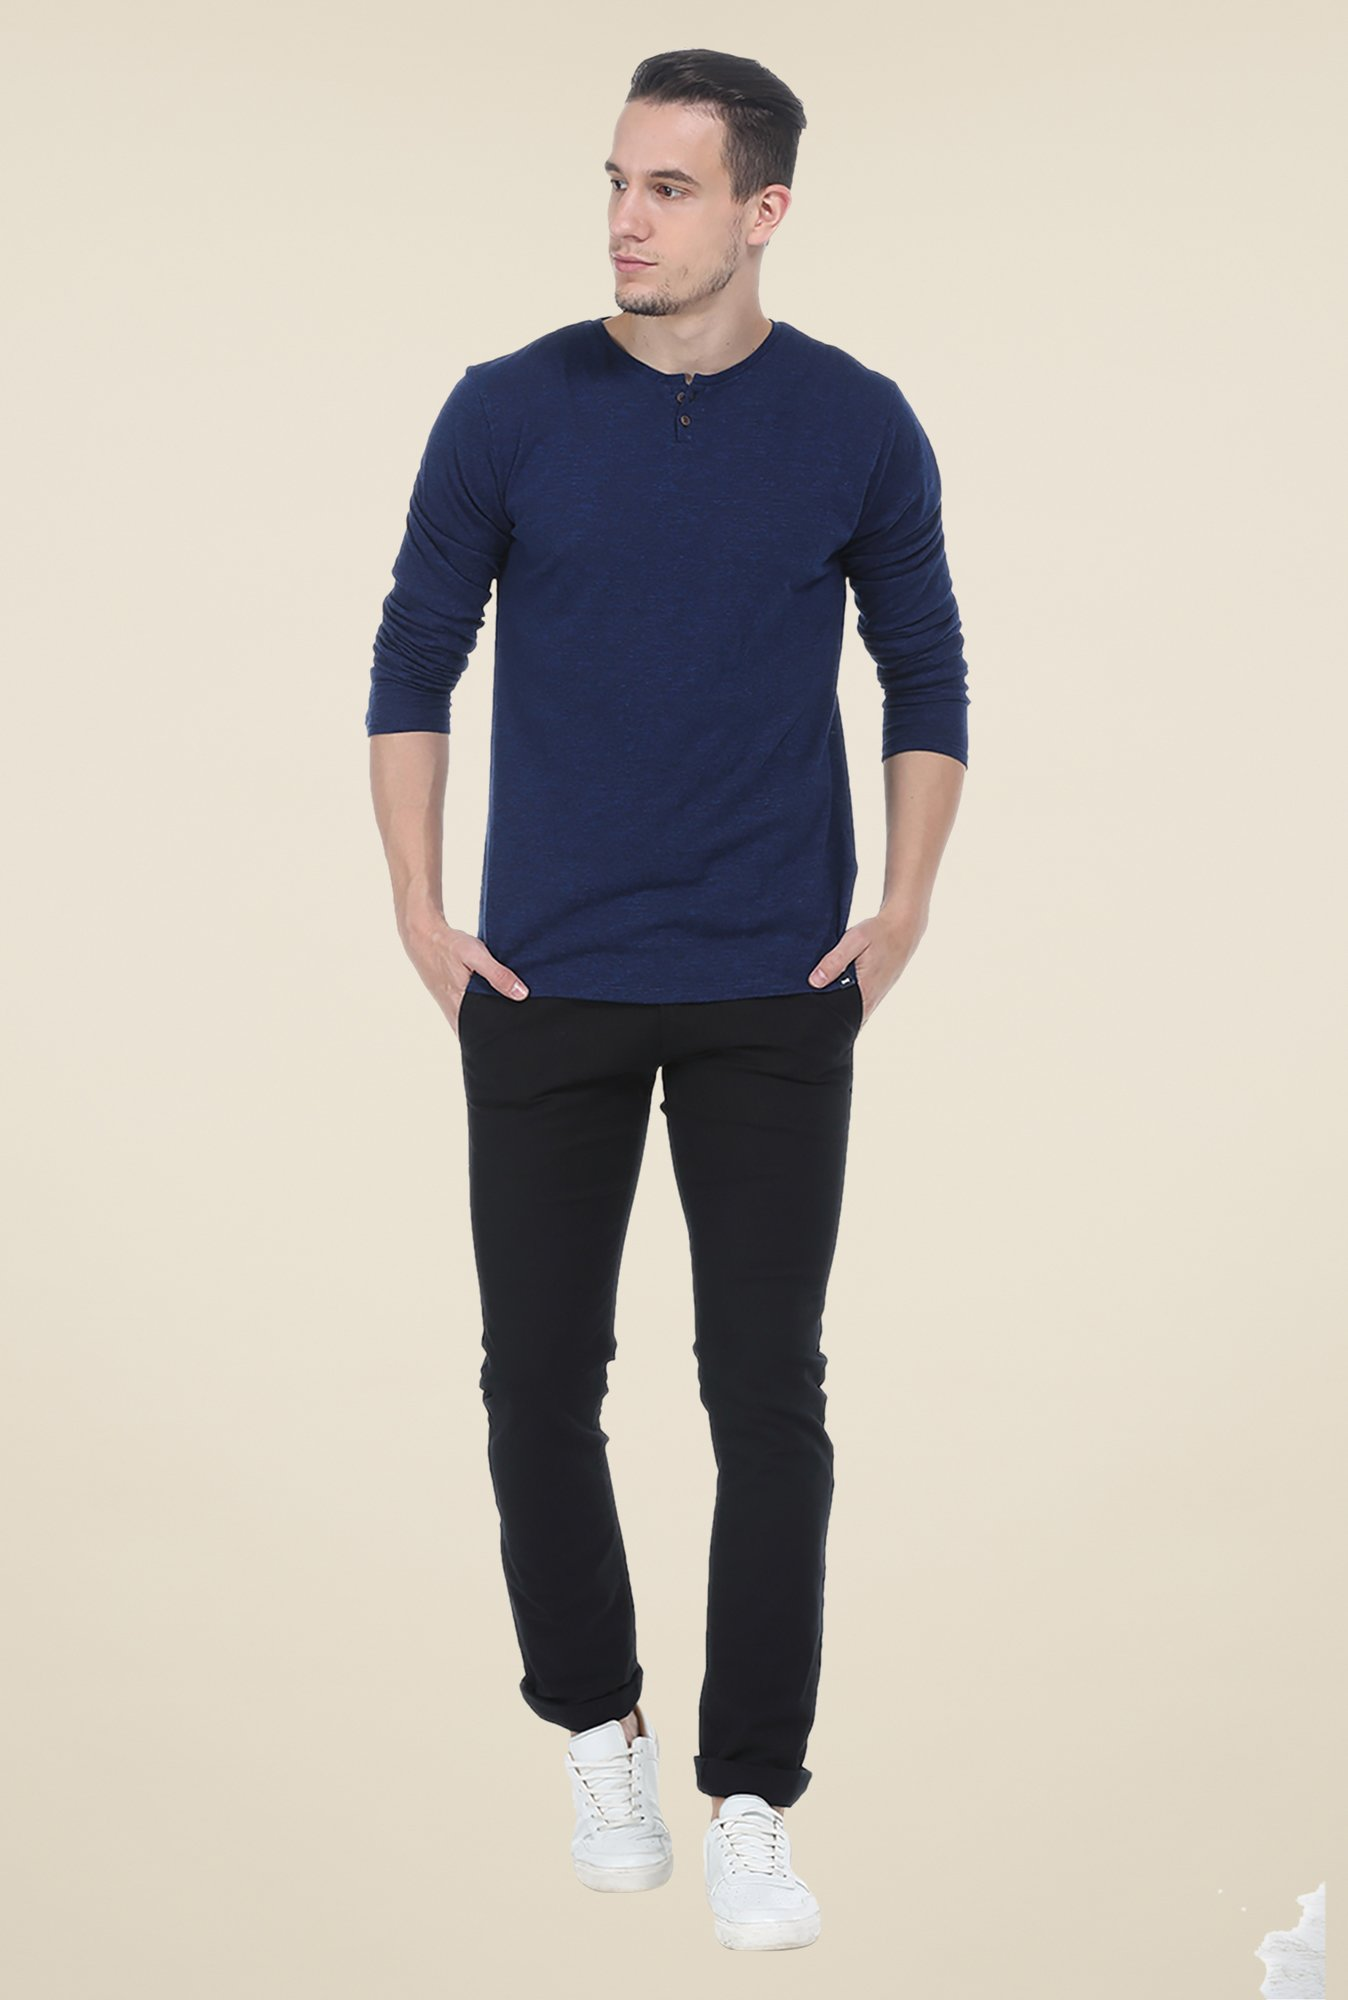 Basics Navy Textured T Shirt